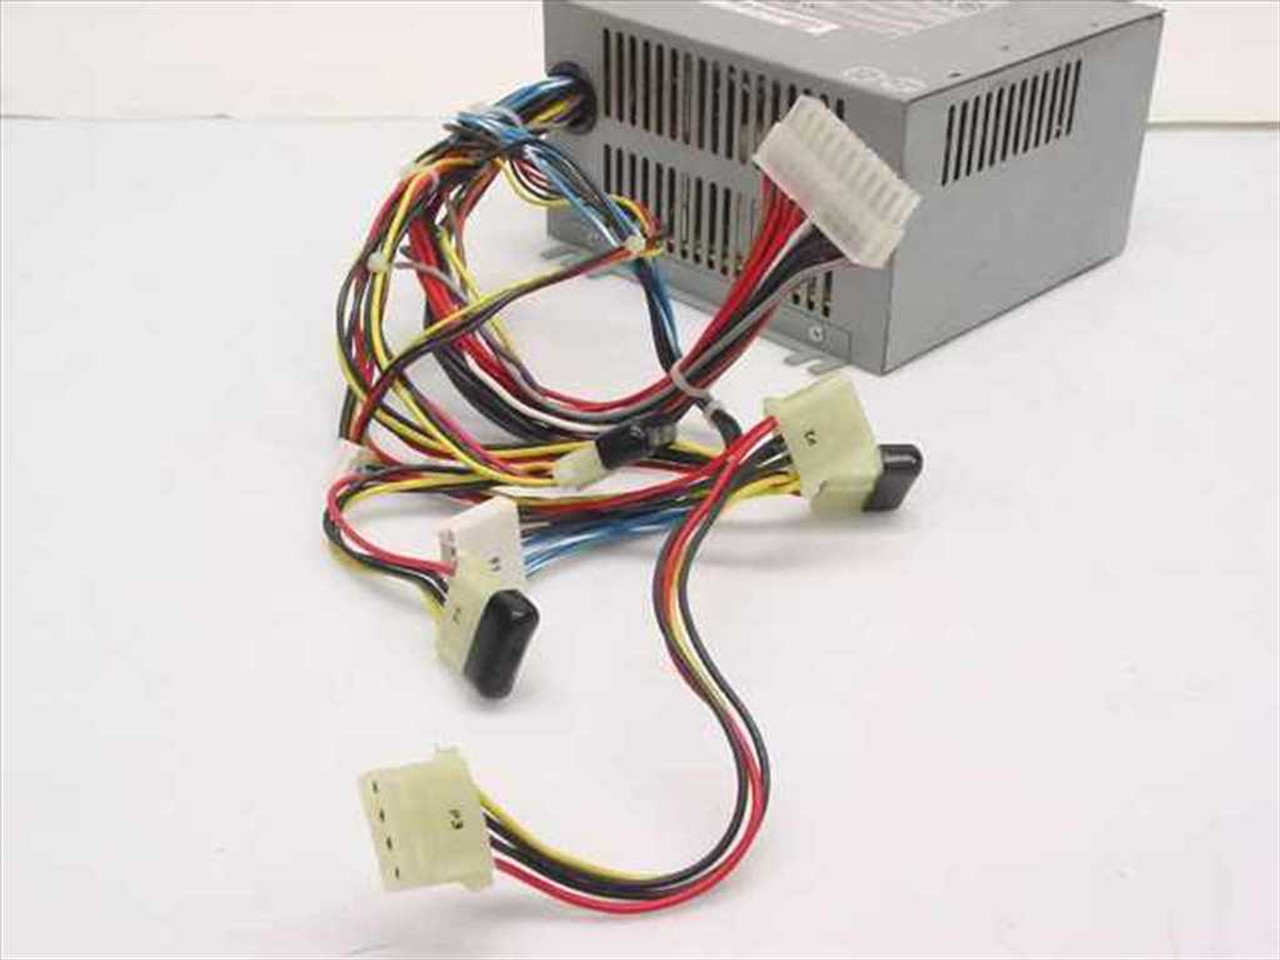 hight resolution of  dell repair diagram dell 87346 200 w power supply ps 5201 1d1a recycledgoods com eaton mcc wiring